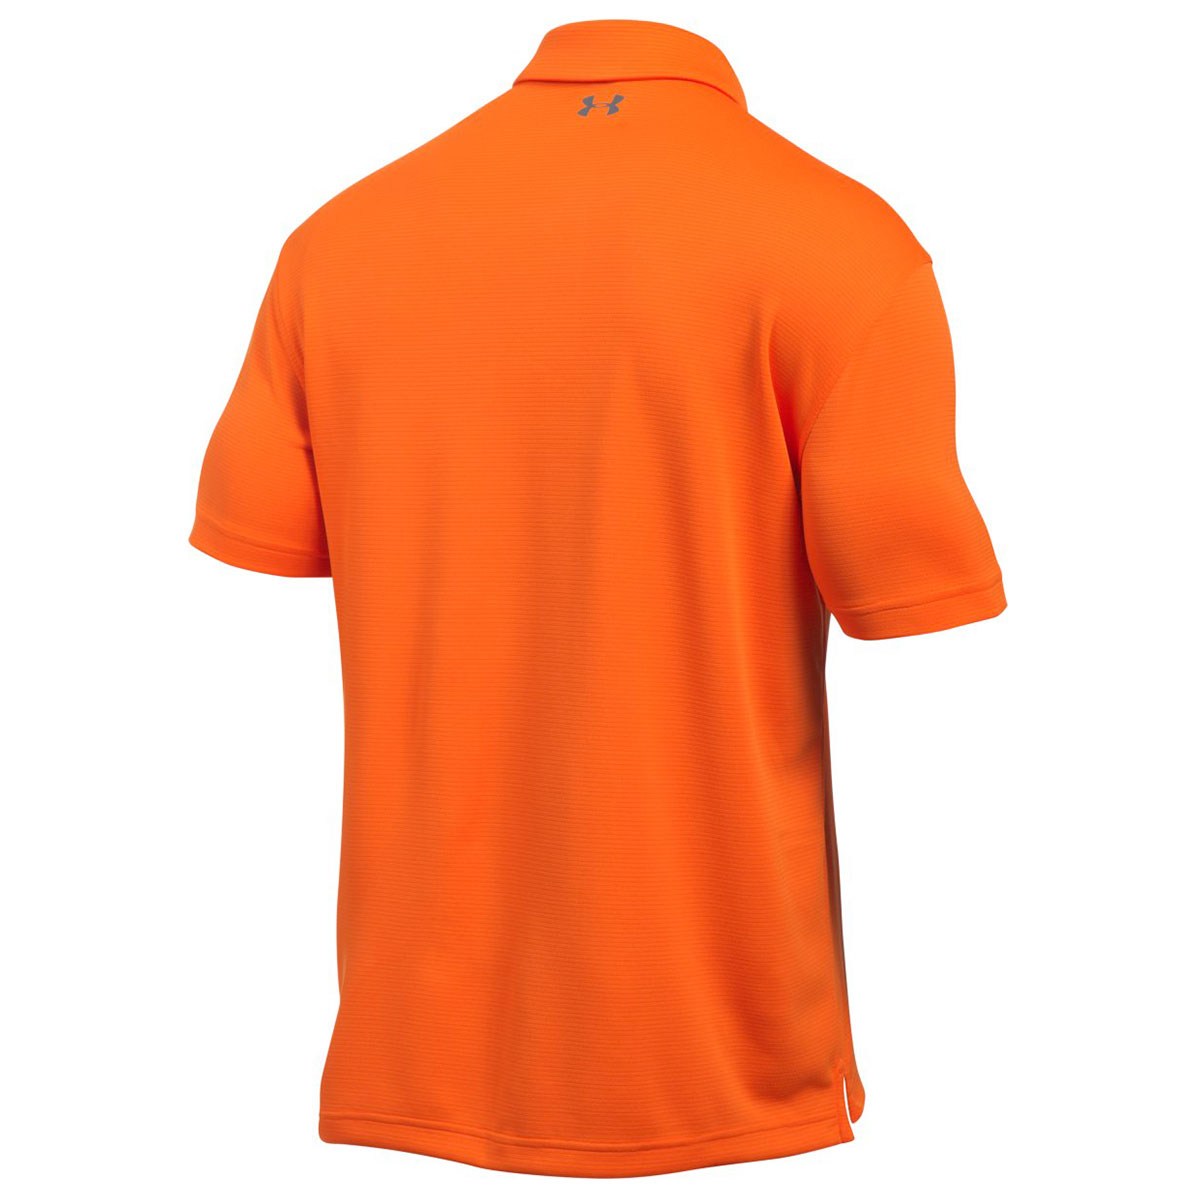 Under-Armour-Mens-Golf-Tech-Wicking-Textured-Soft-Light-Polo-Shirt thumbnail 81